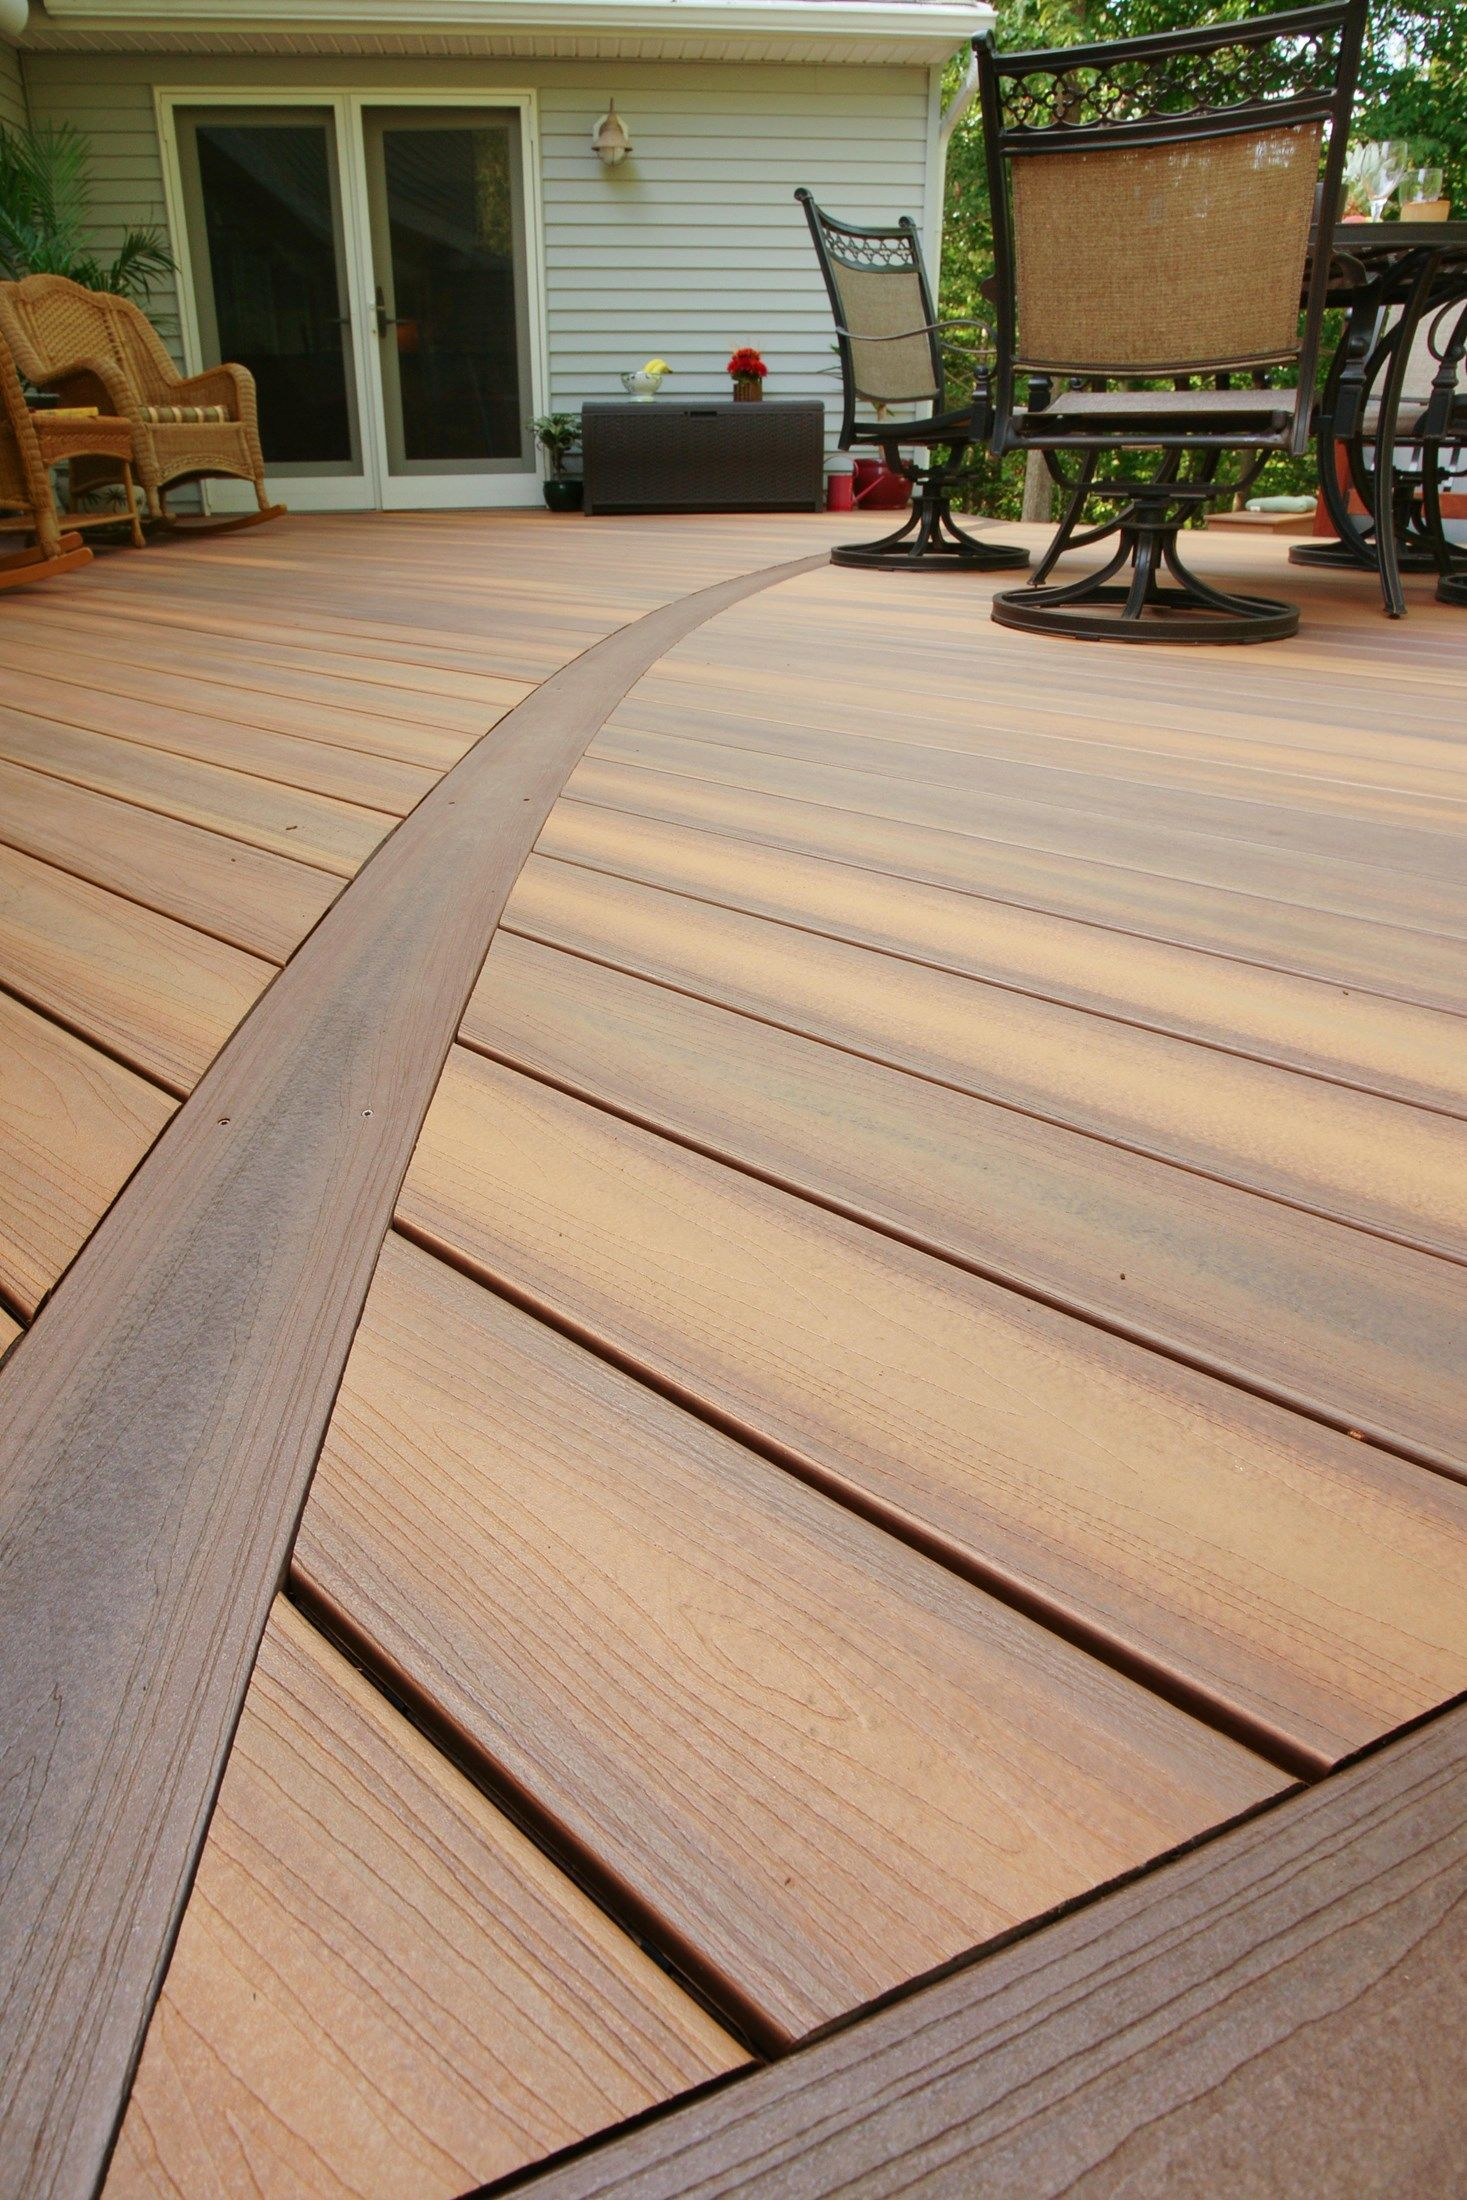 Davidson curved deck - Picture 1411